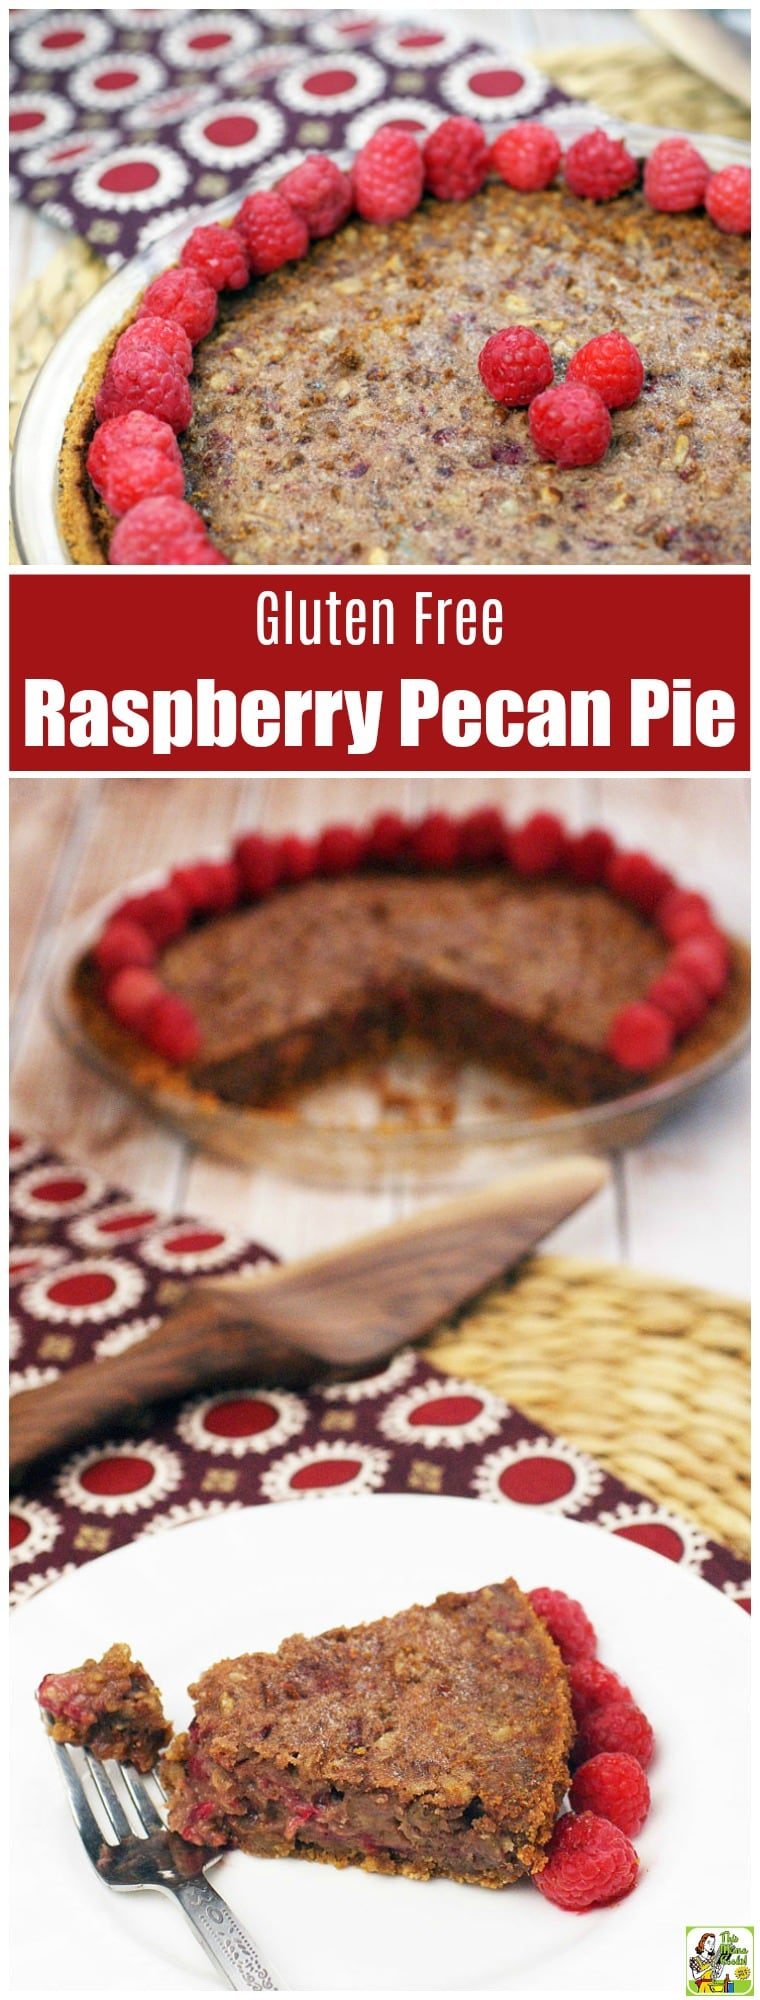 Gluten Free Raspberry Pecan Pie Recipe